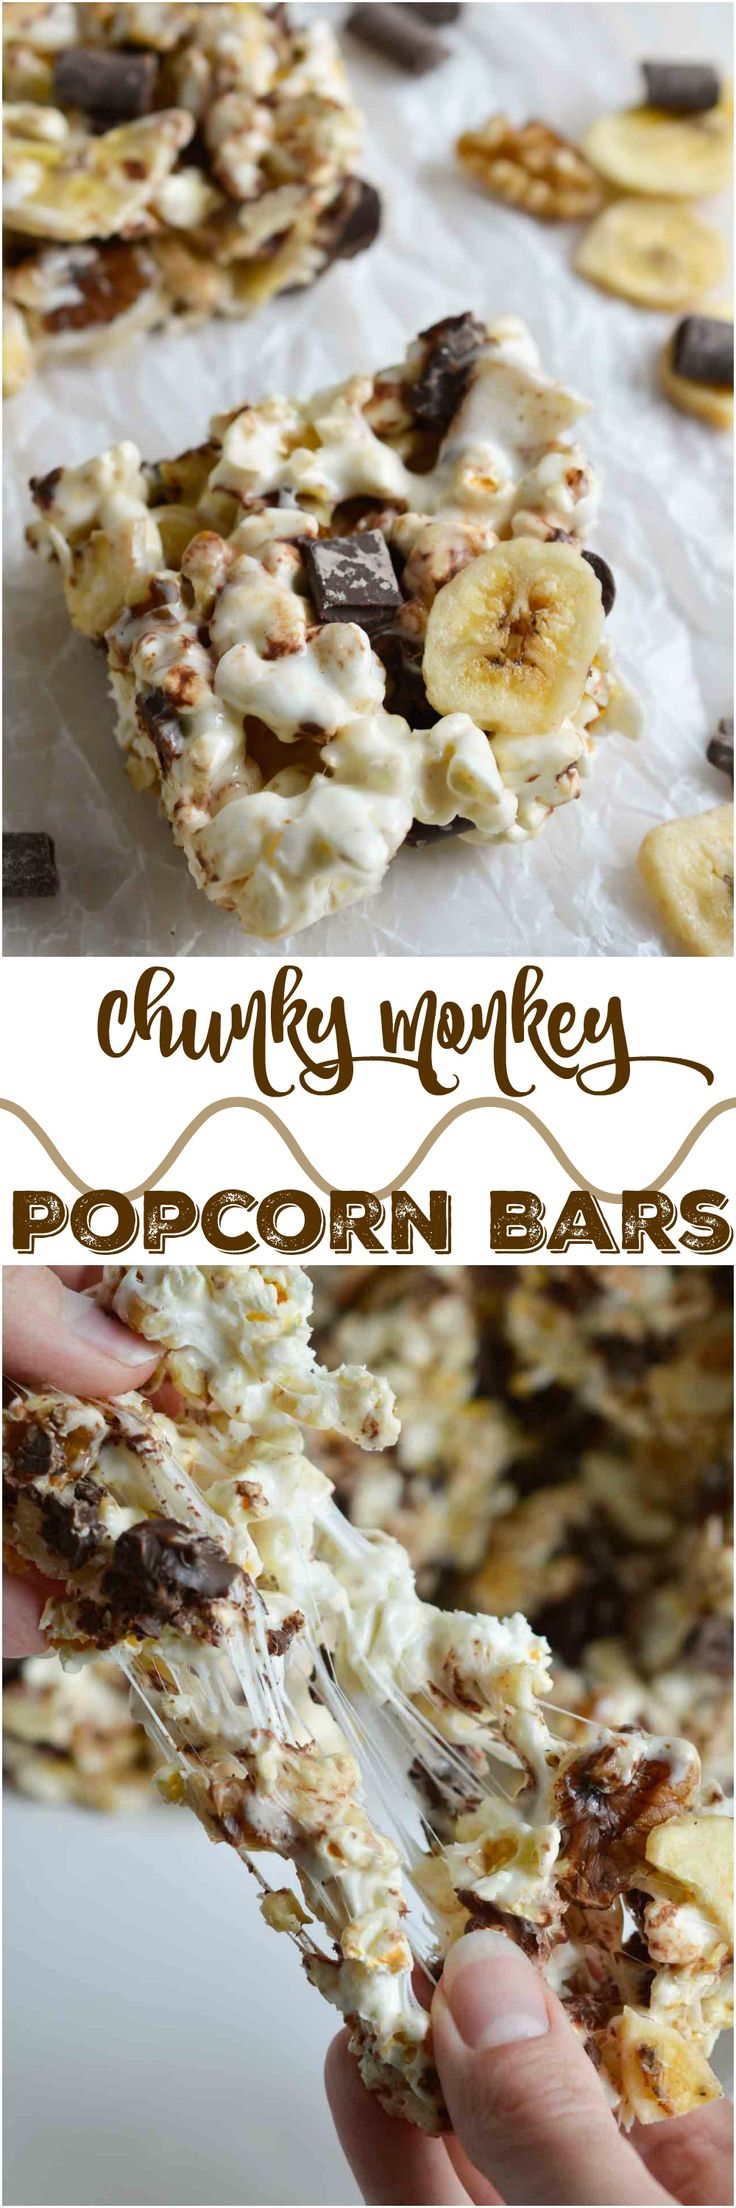 Movie night just got even better with these Chunky Monkey Popcorn Bars! Popcorn marshmallow bars filled with chocolate chunks, banana chips and walnuts. This dessert snack recipe will be a fun family treat! ad #HaveAJOLLYTIME